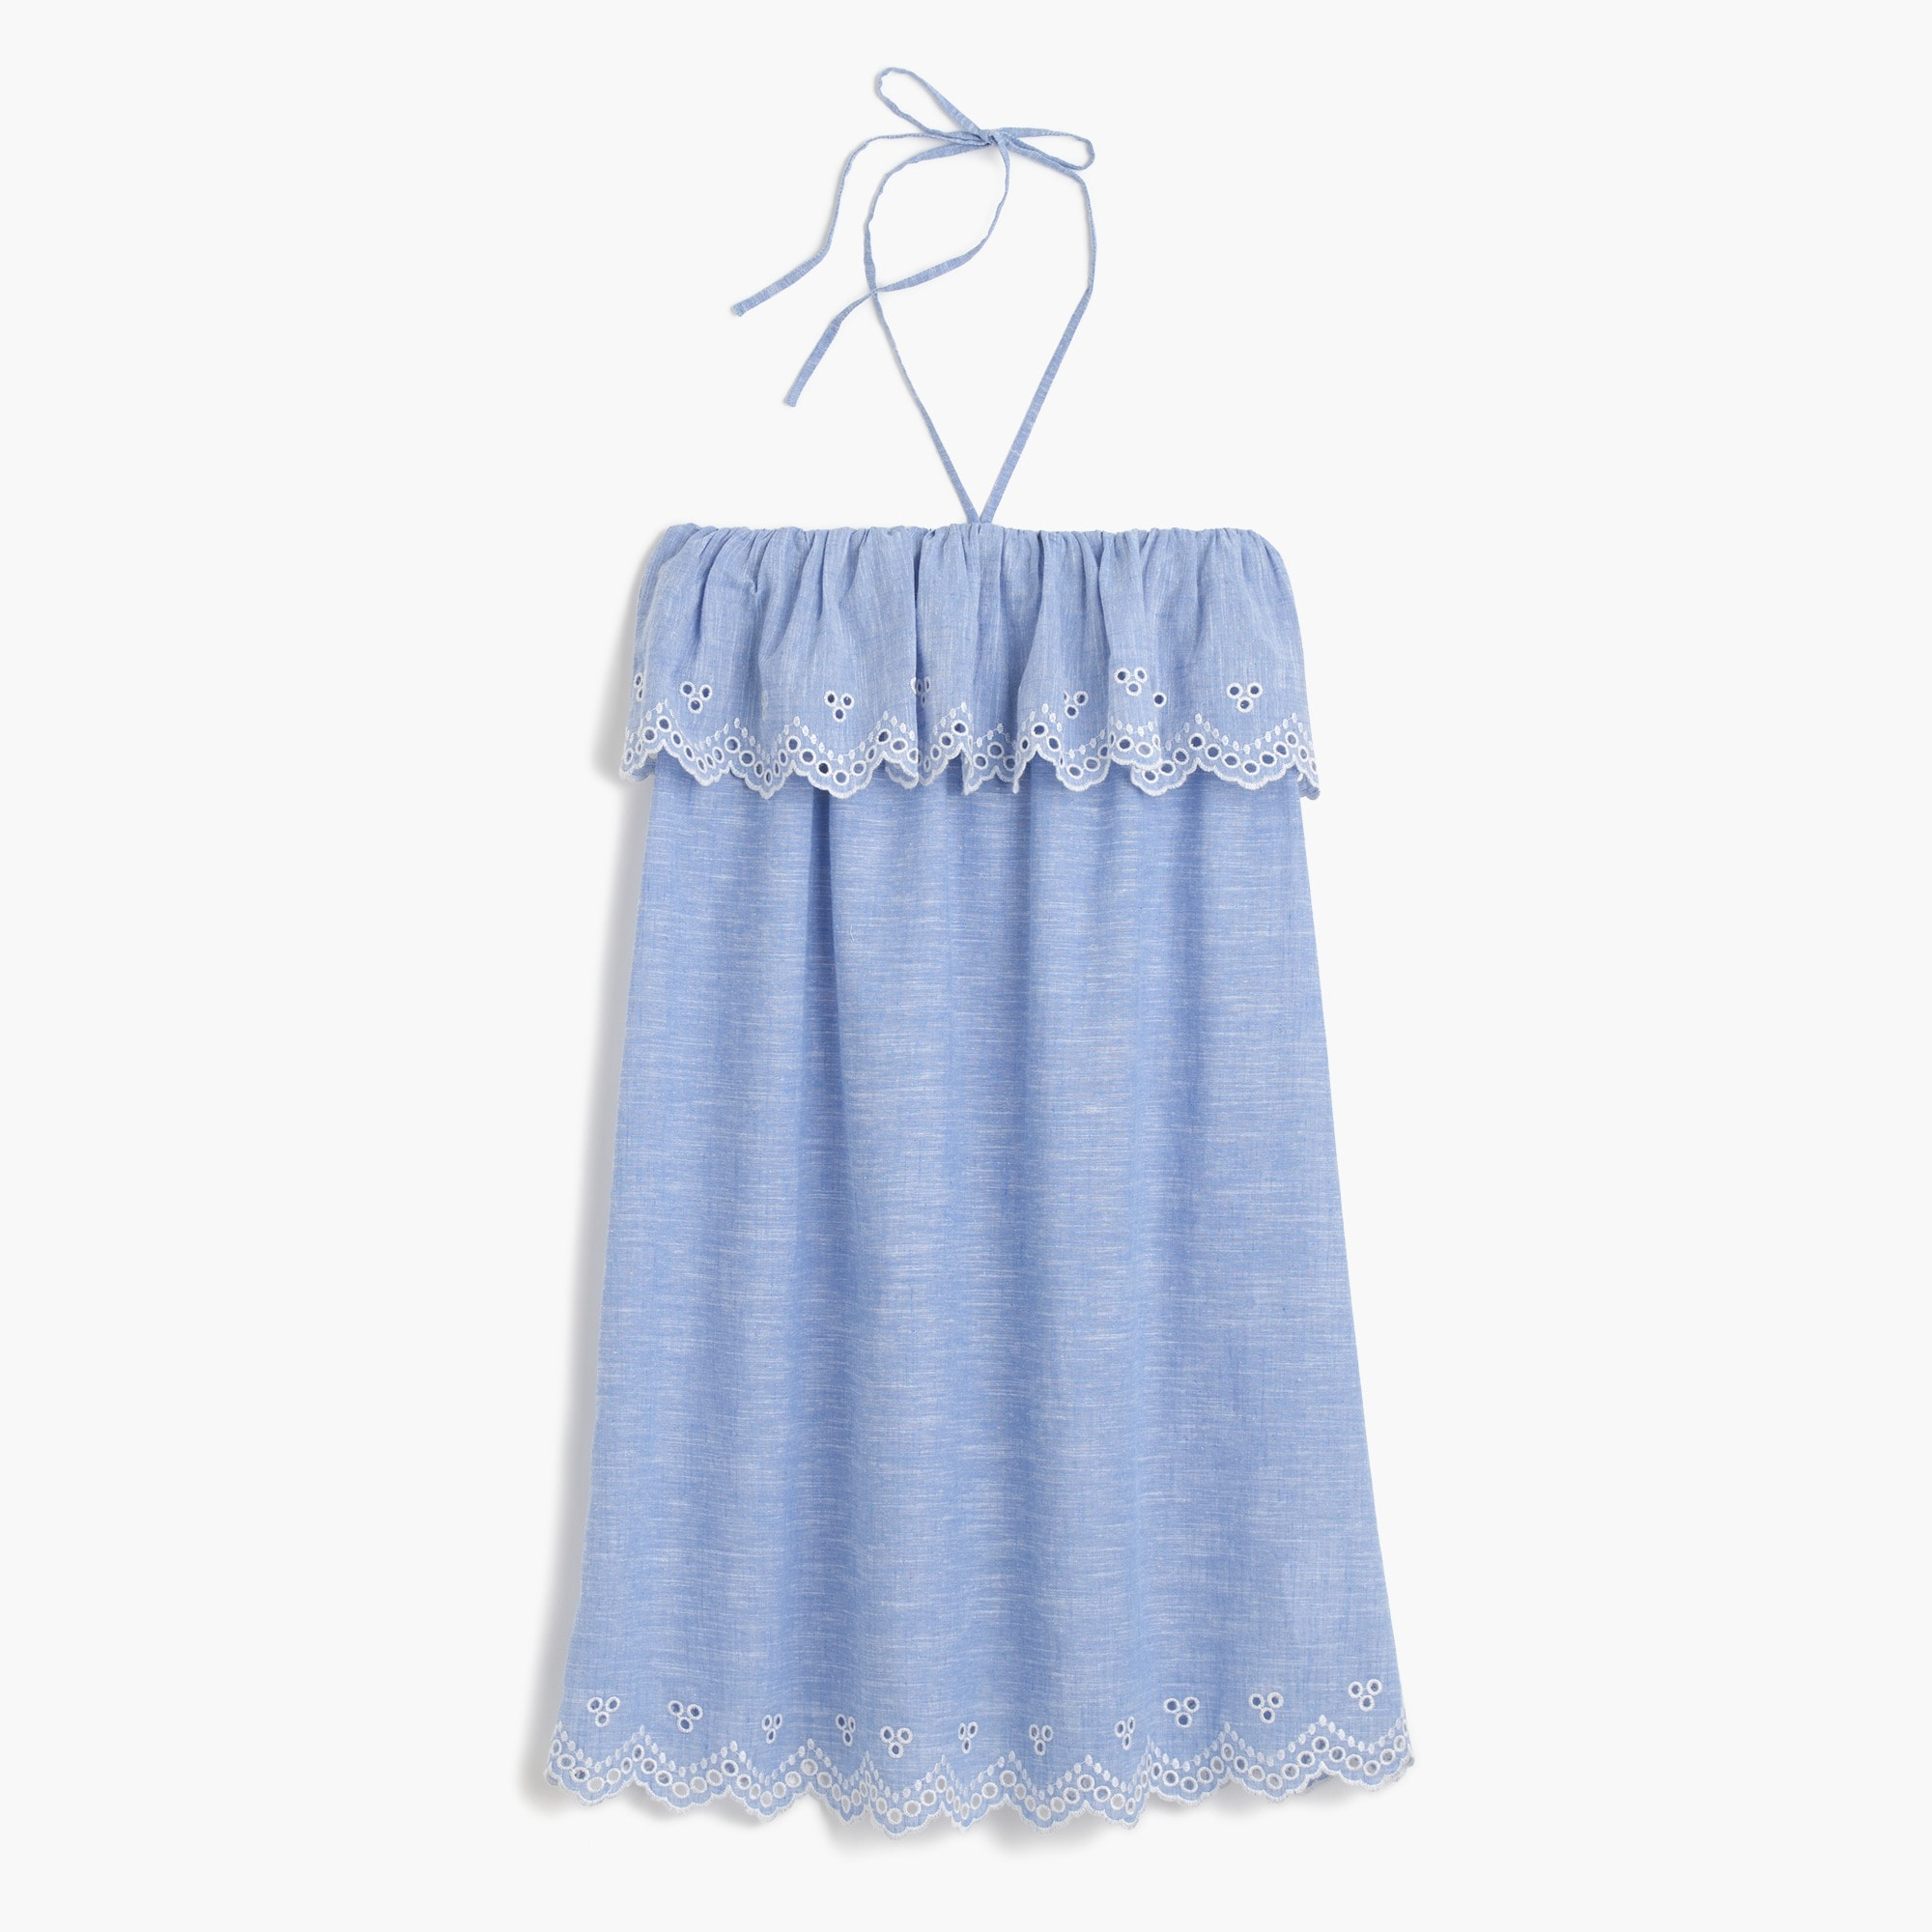 Image 2 for Eyelet beach dress